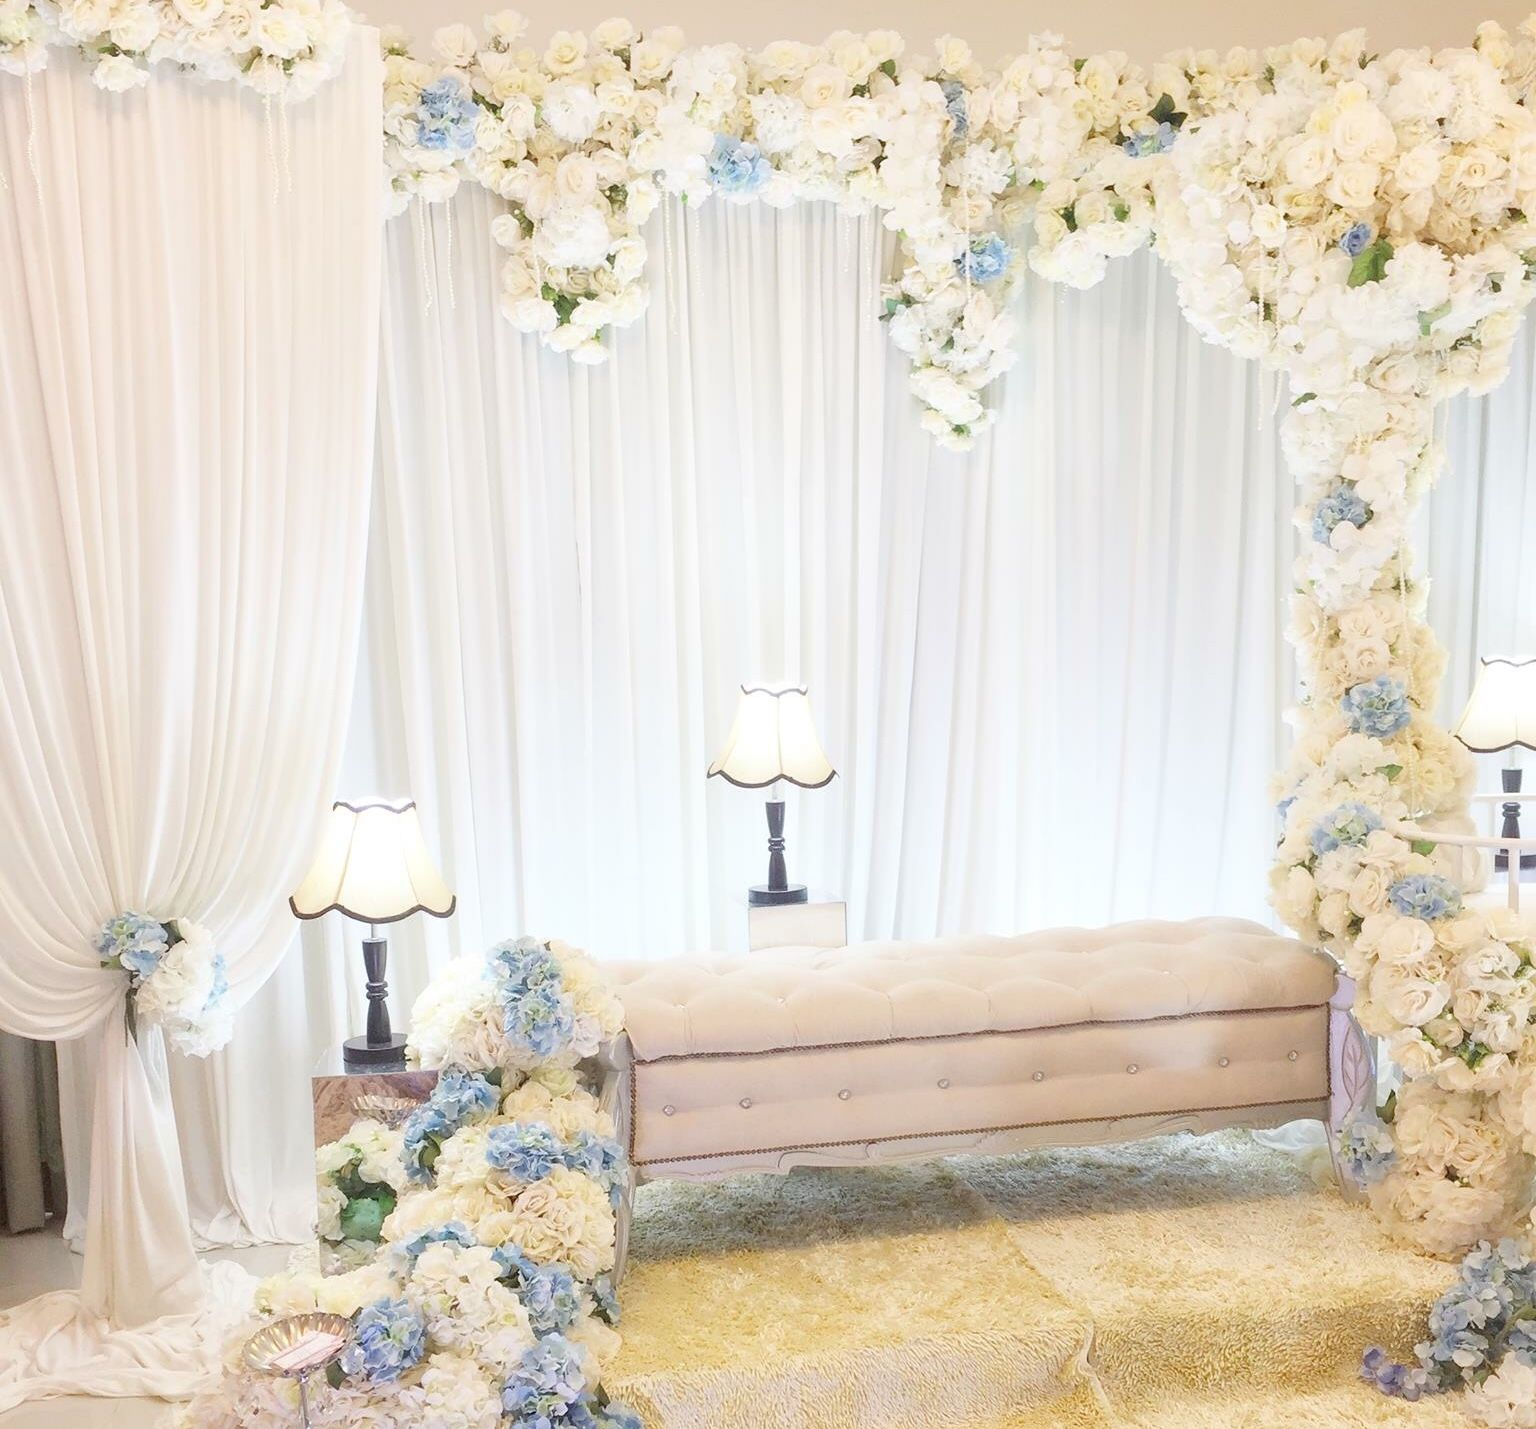 Weddings decoration, Arabian Morroco theme. Pelamin sanding rumah ...